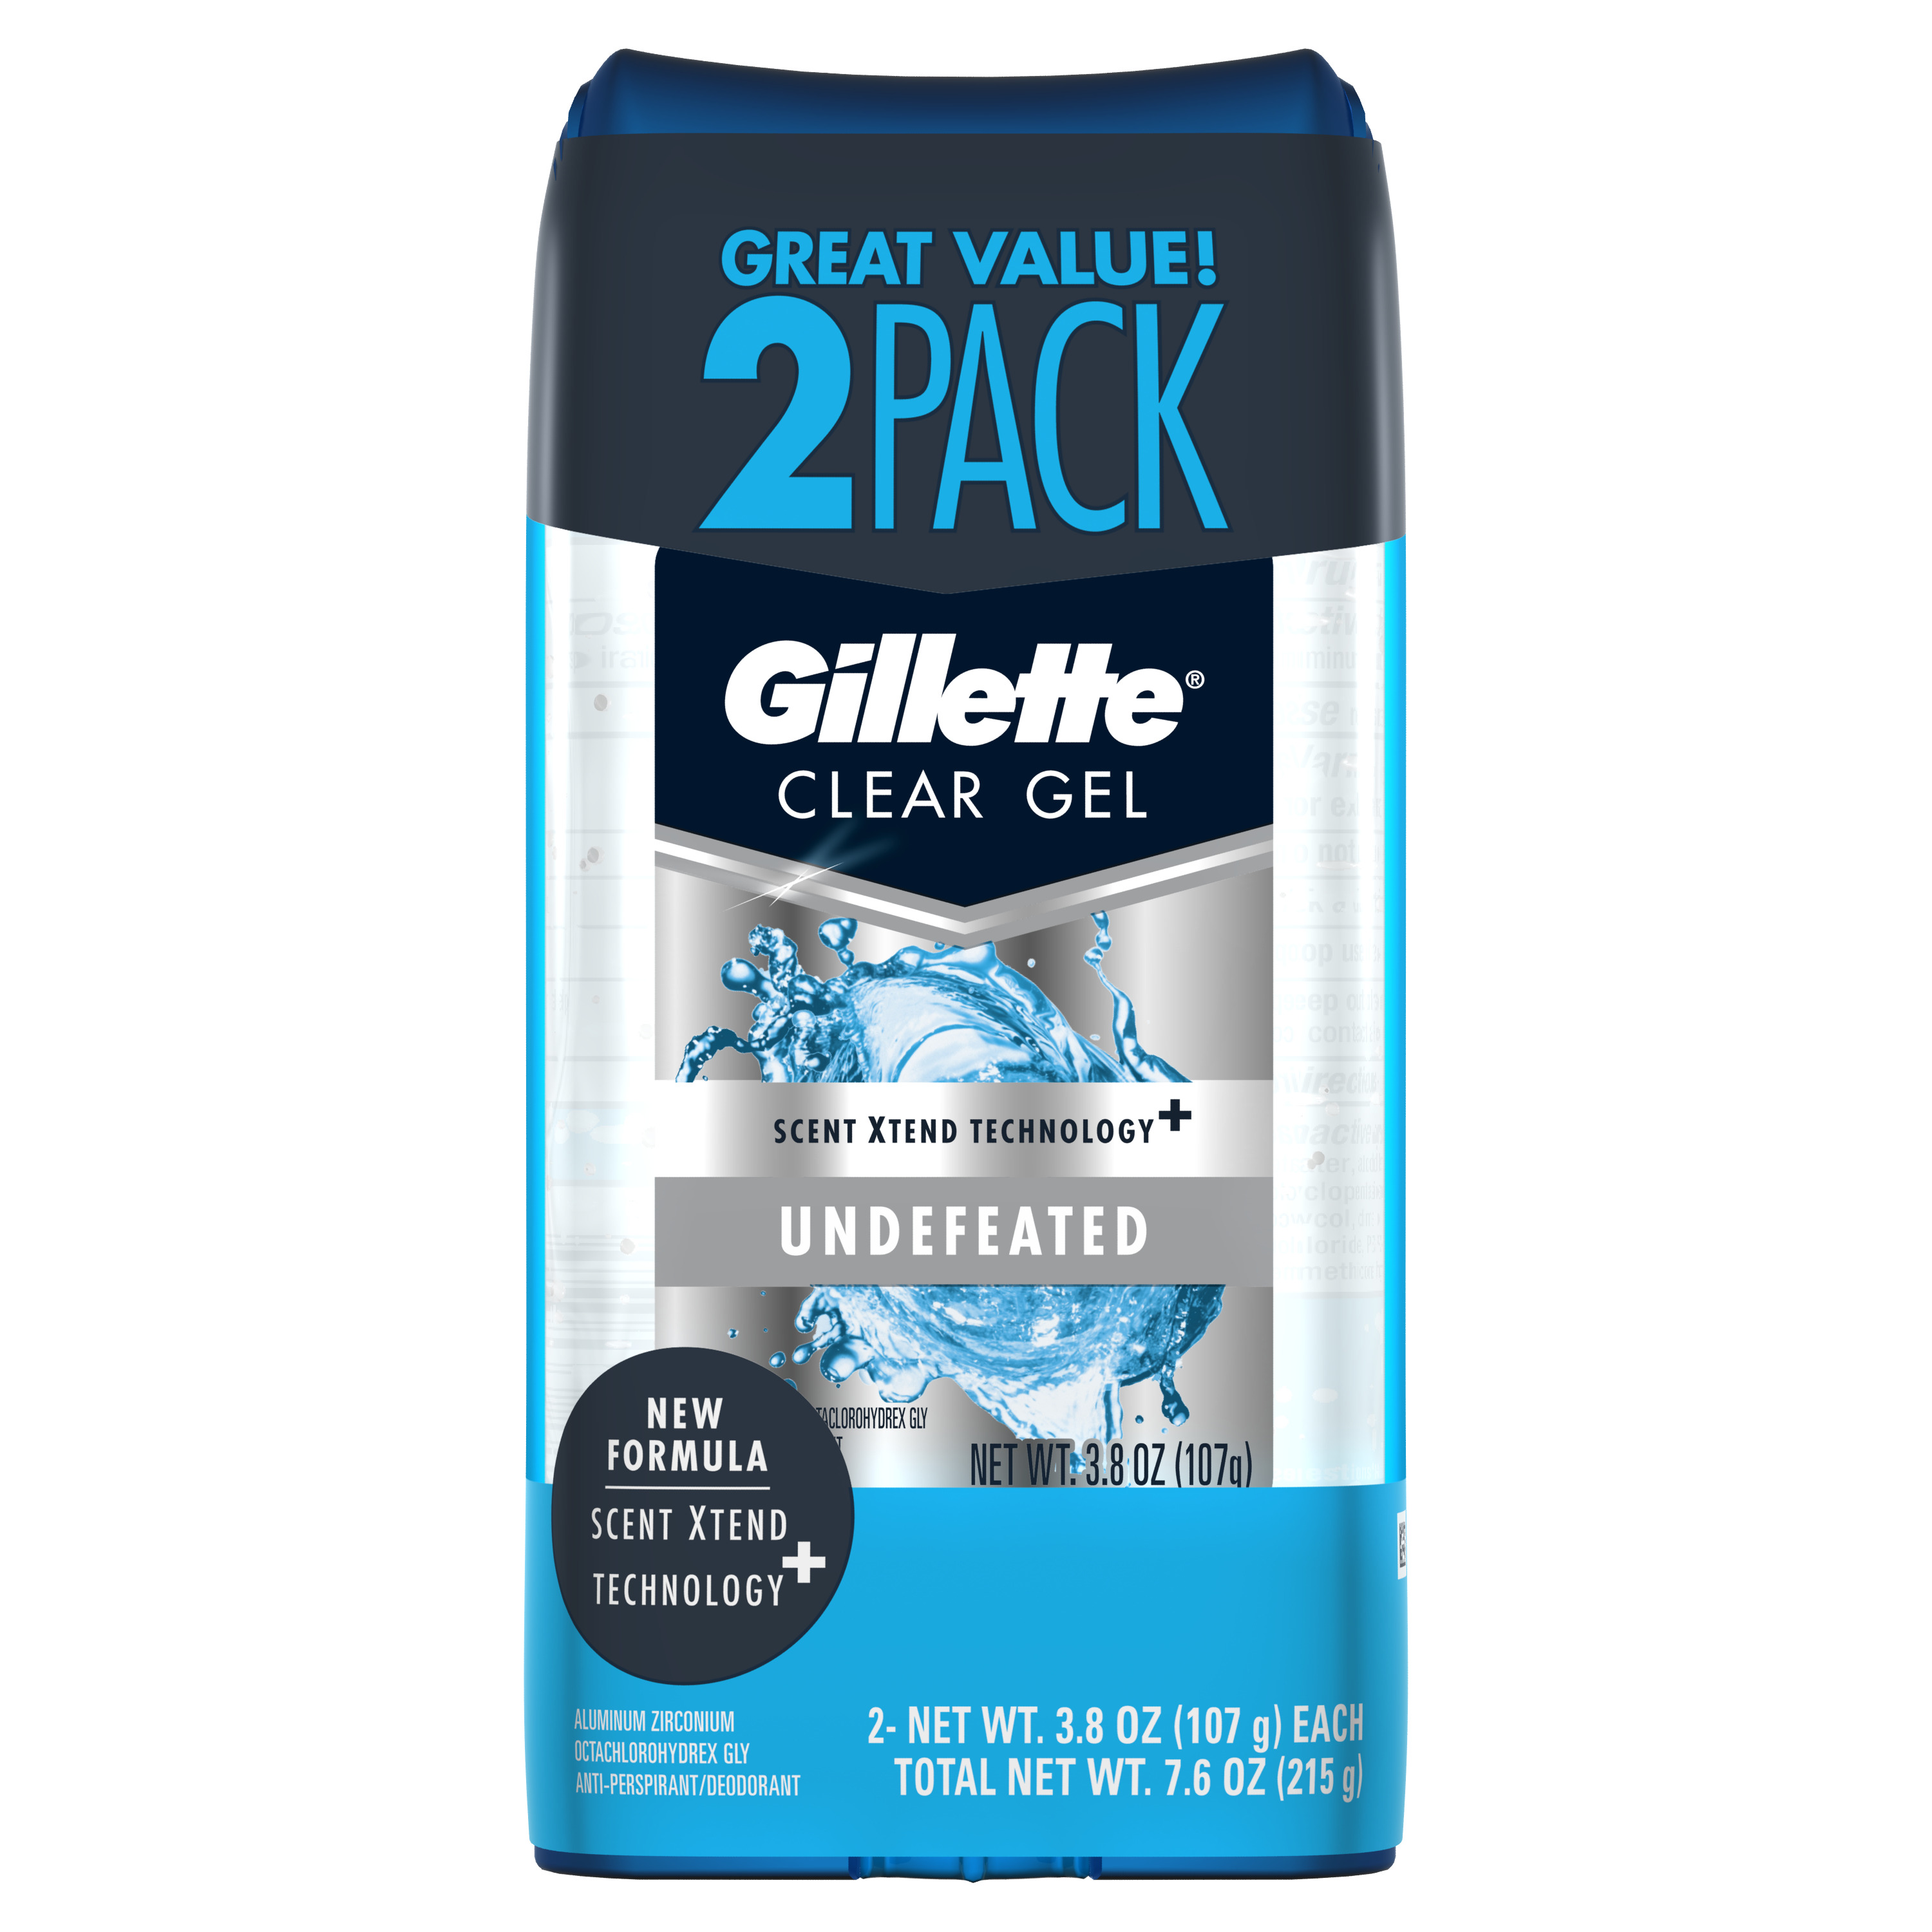 Gillette Undefeated Clear Gel Men's Antiperspirant and Deodorant 3.8 oz each 2-Pack